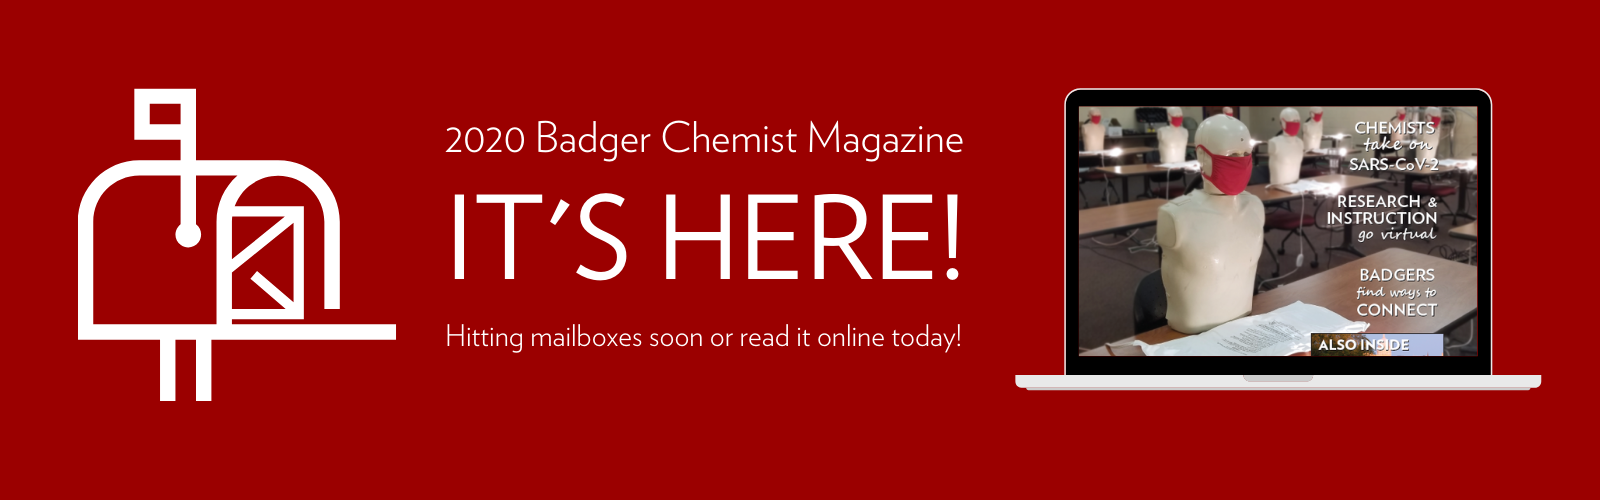 Badger Chemist Magazine IT'S HERE! Hitting Mailboxes Soon or Read Online Today!